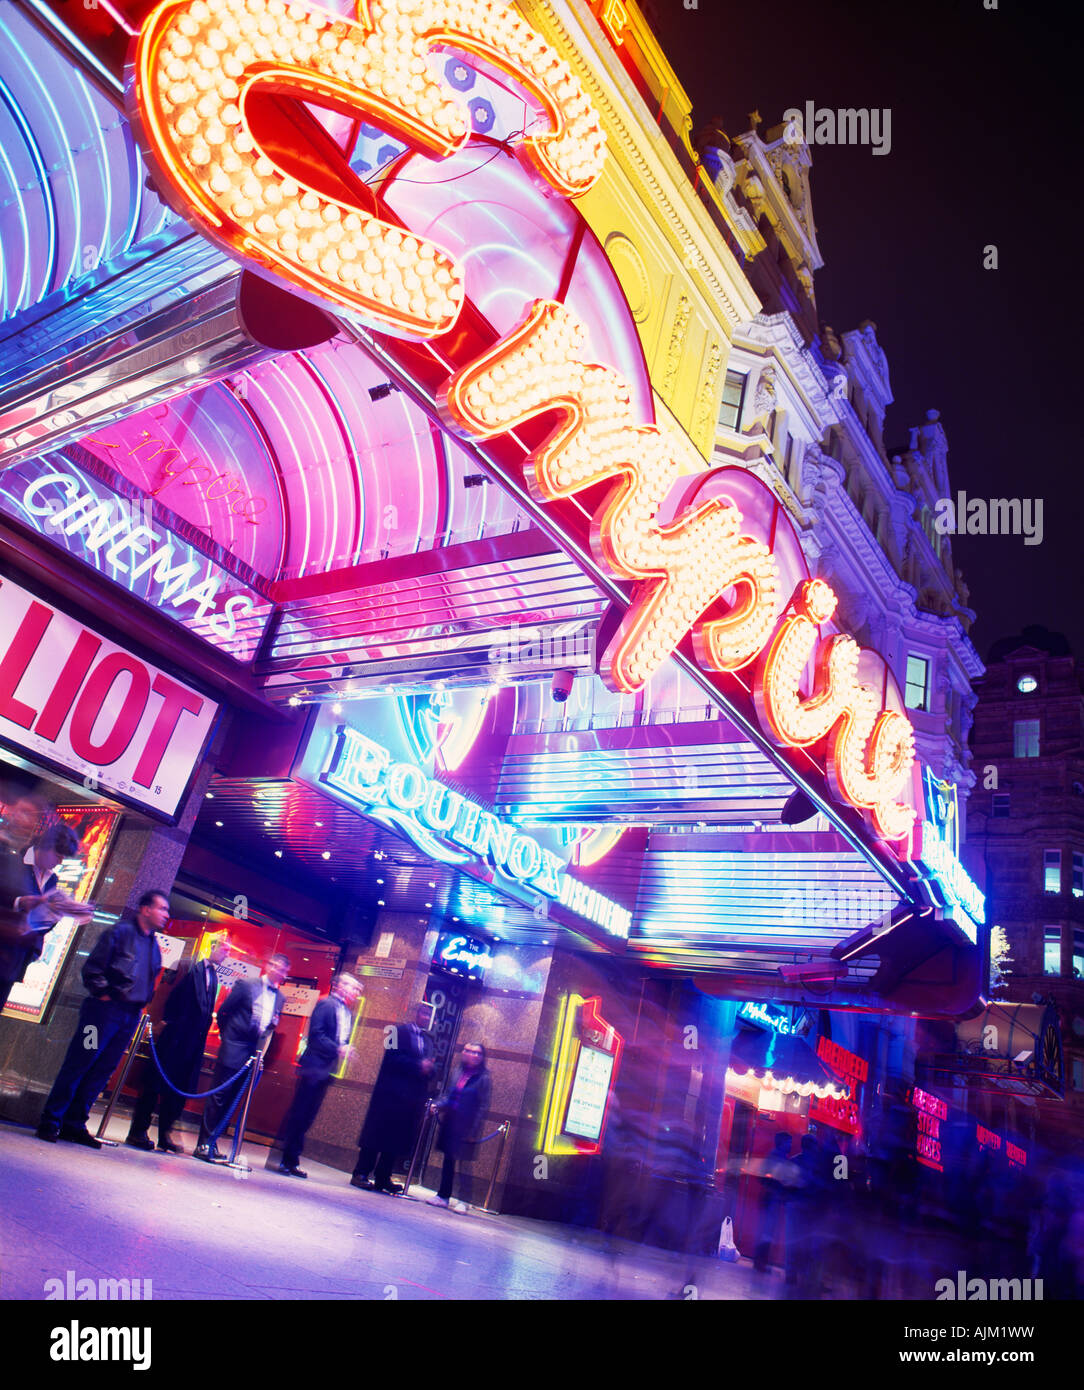 Empire cinema, Leicester Square, London - Stock Image